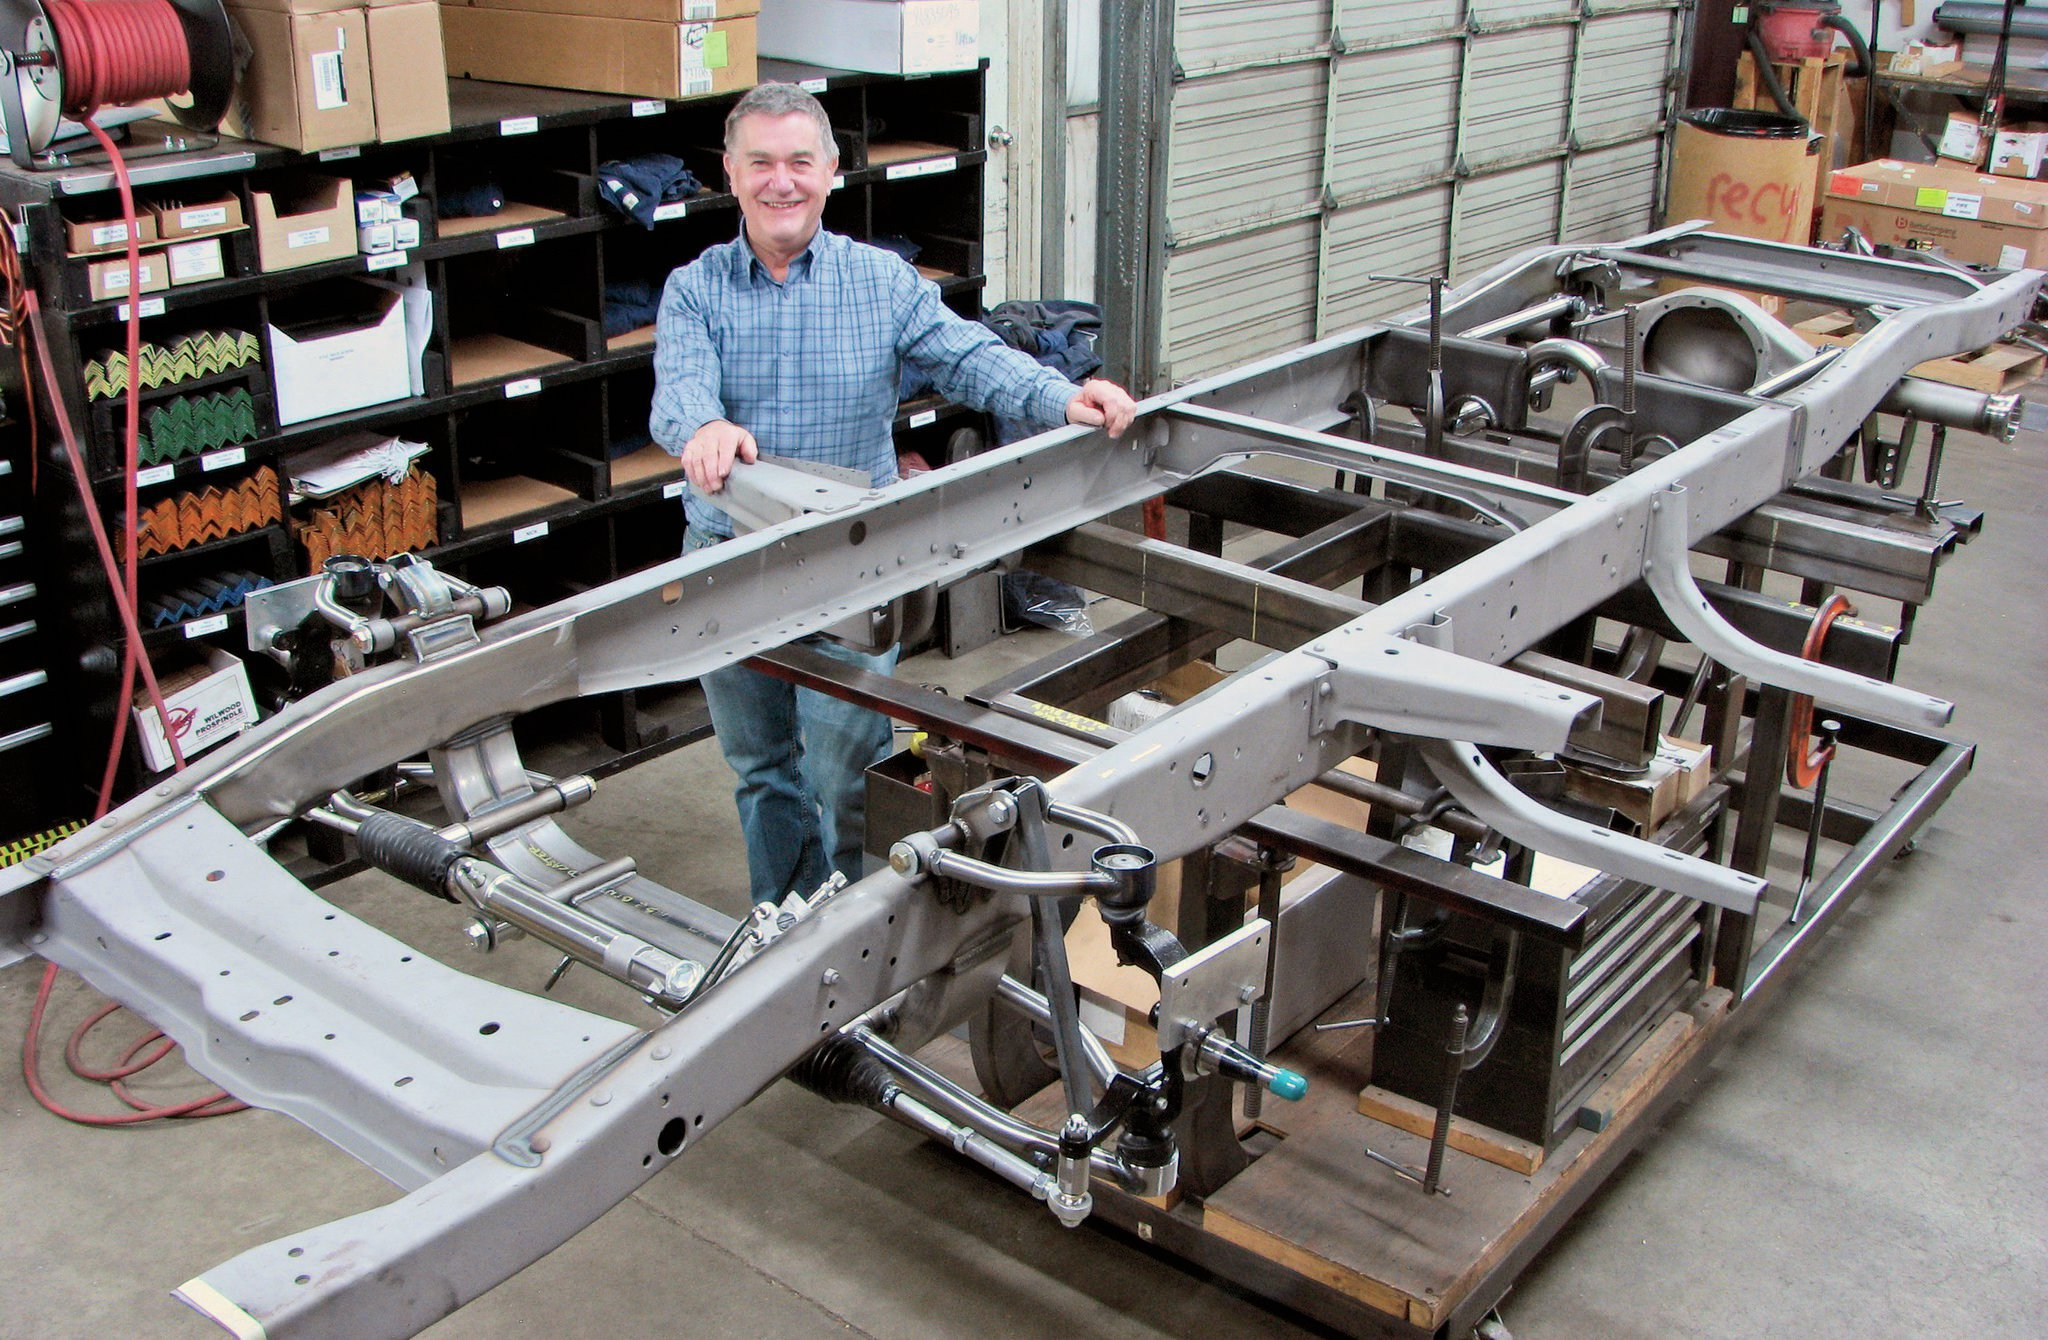 1. Art Morrison stands behind his products, literally and figuratively. With son Craig and a talented staff of engineers, fabricators, and sales people AME has become a leader in the custom chassis business.